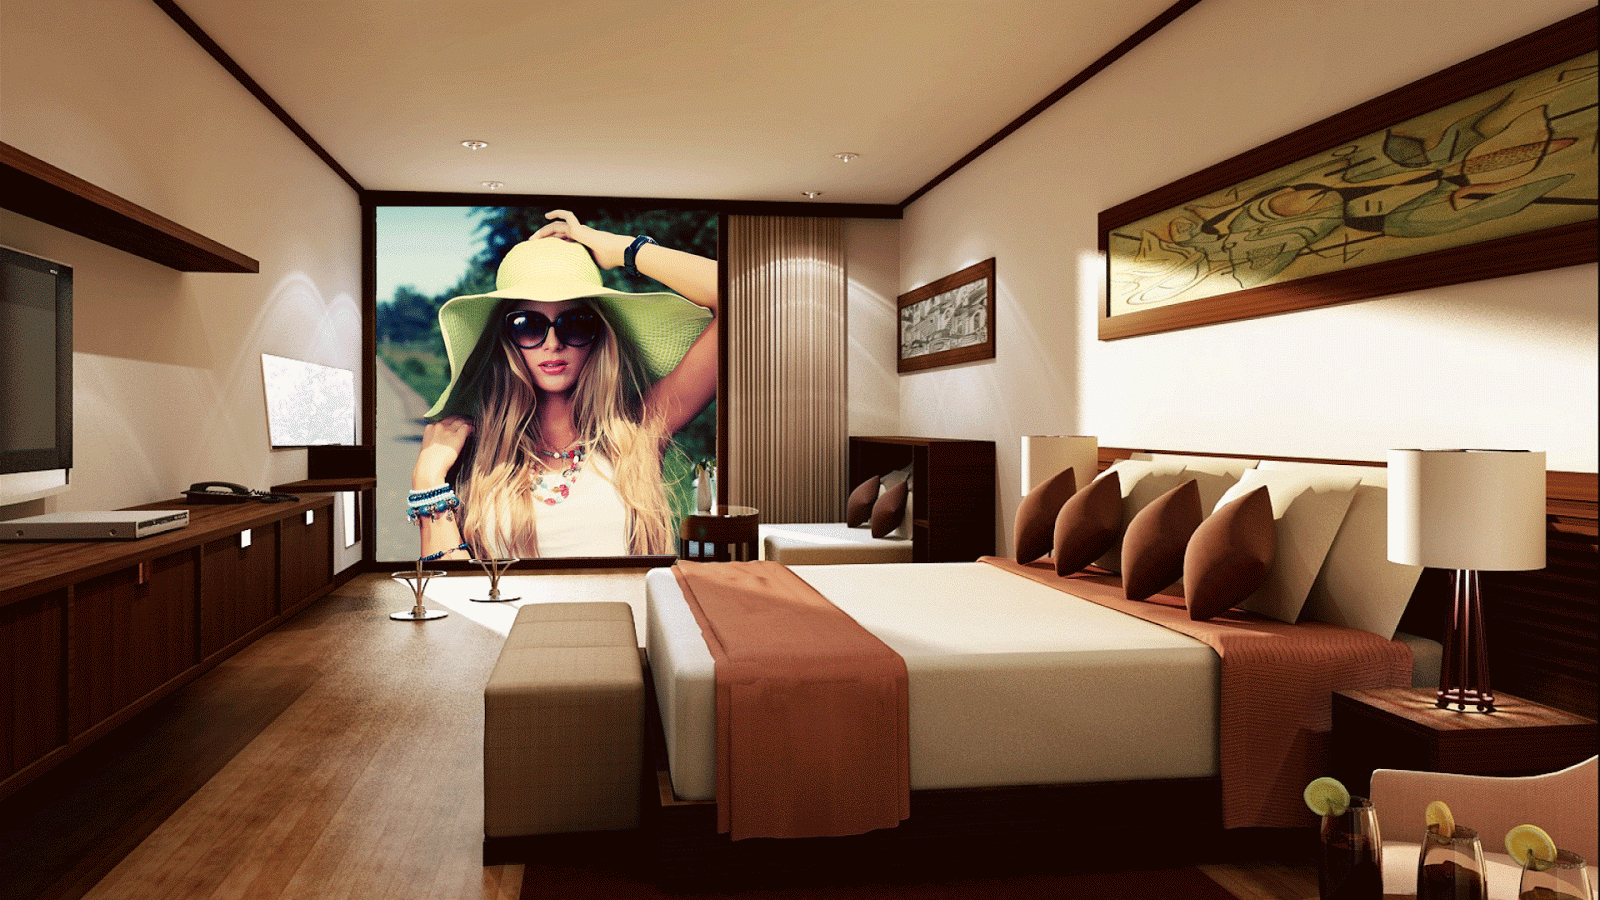 Bedroom Photo Frames 2018 - Android Apps on Google Play